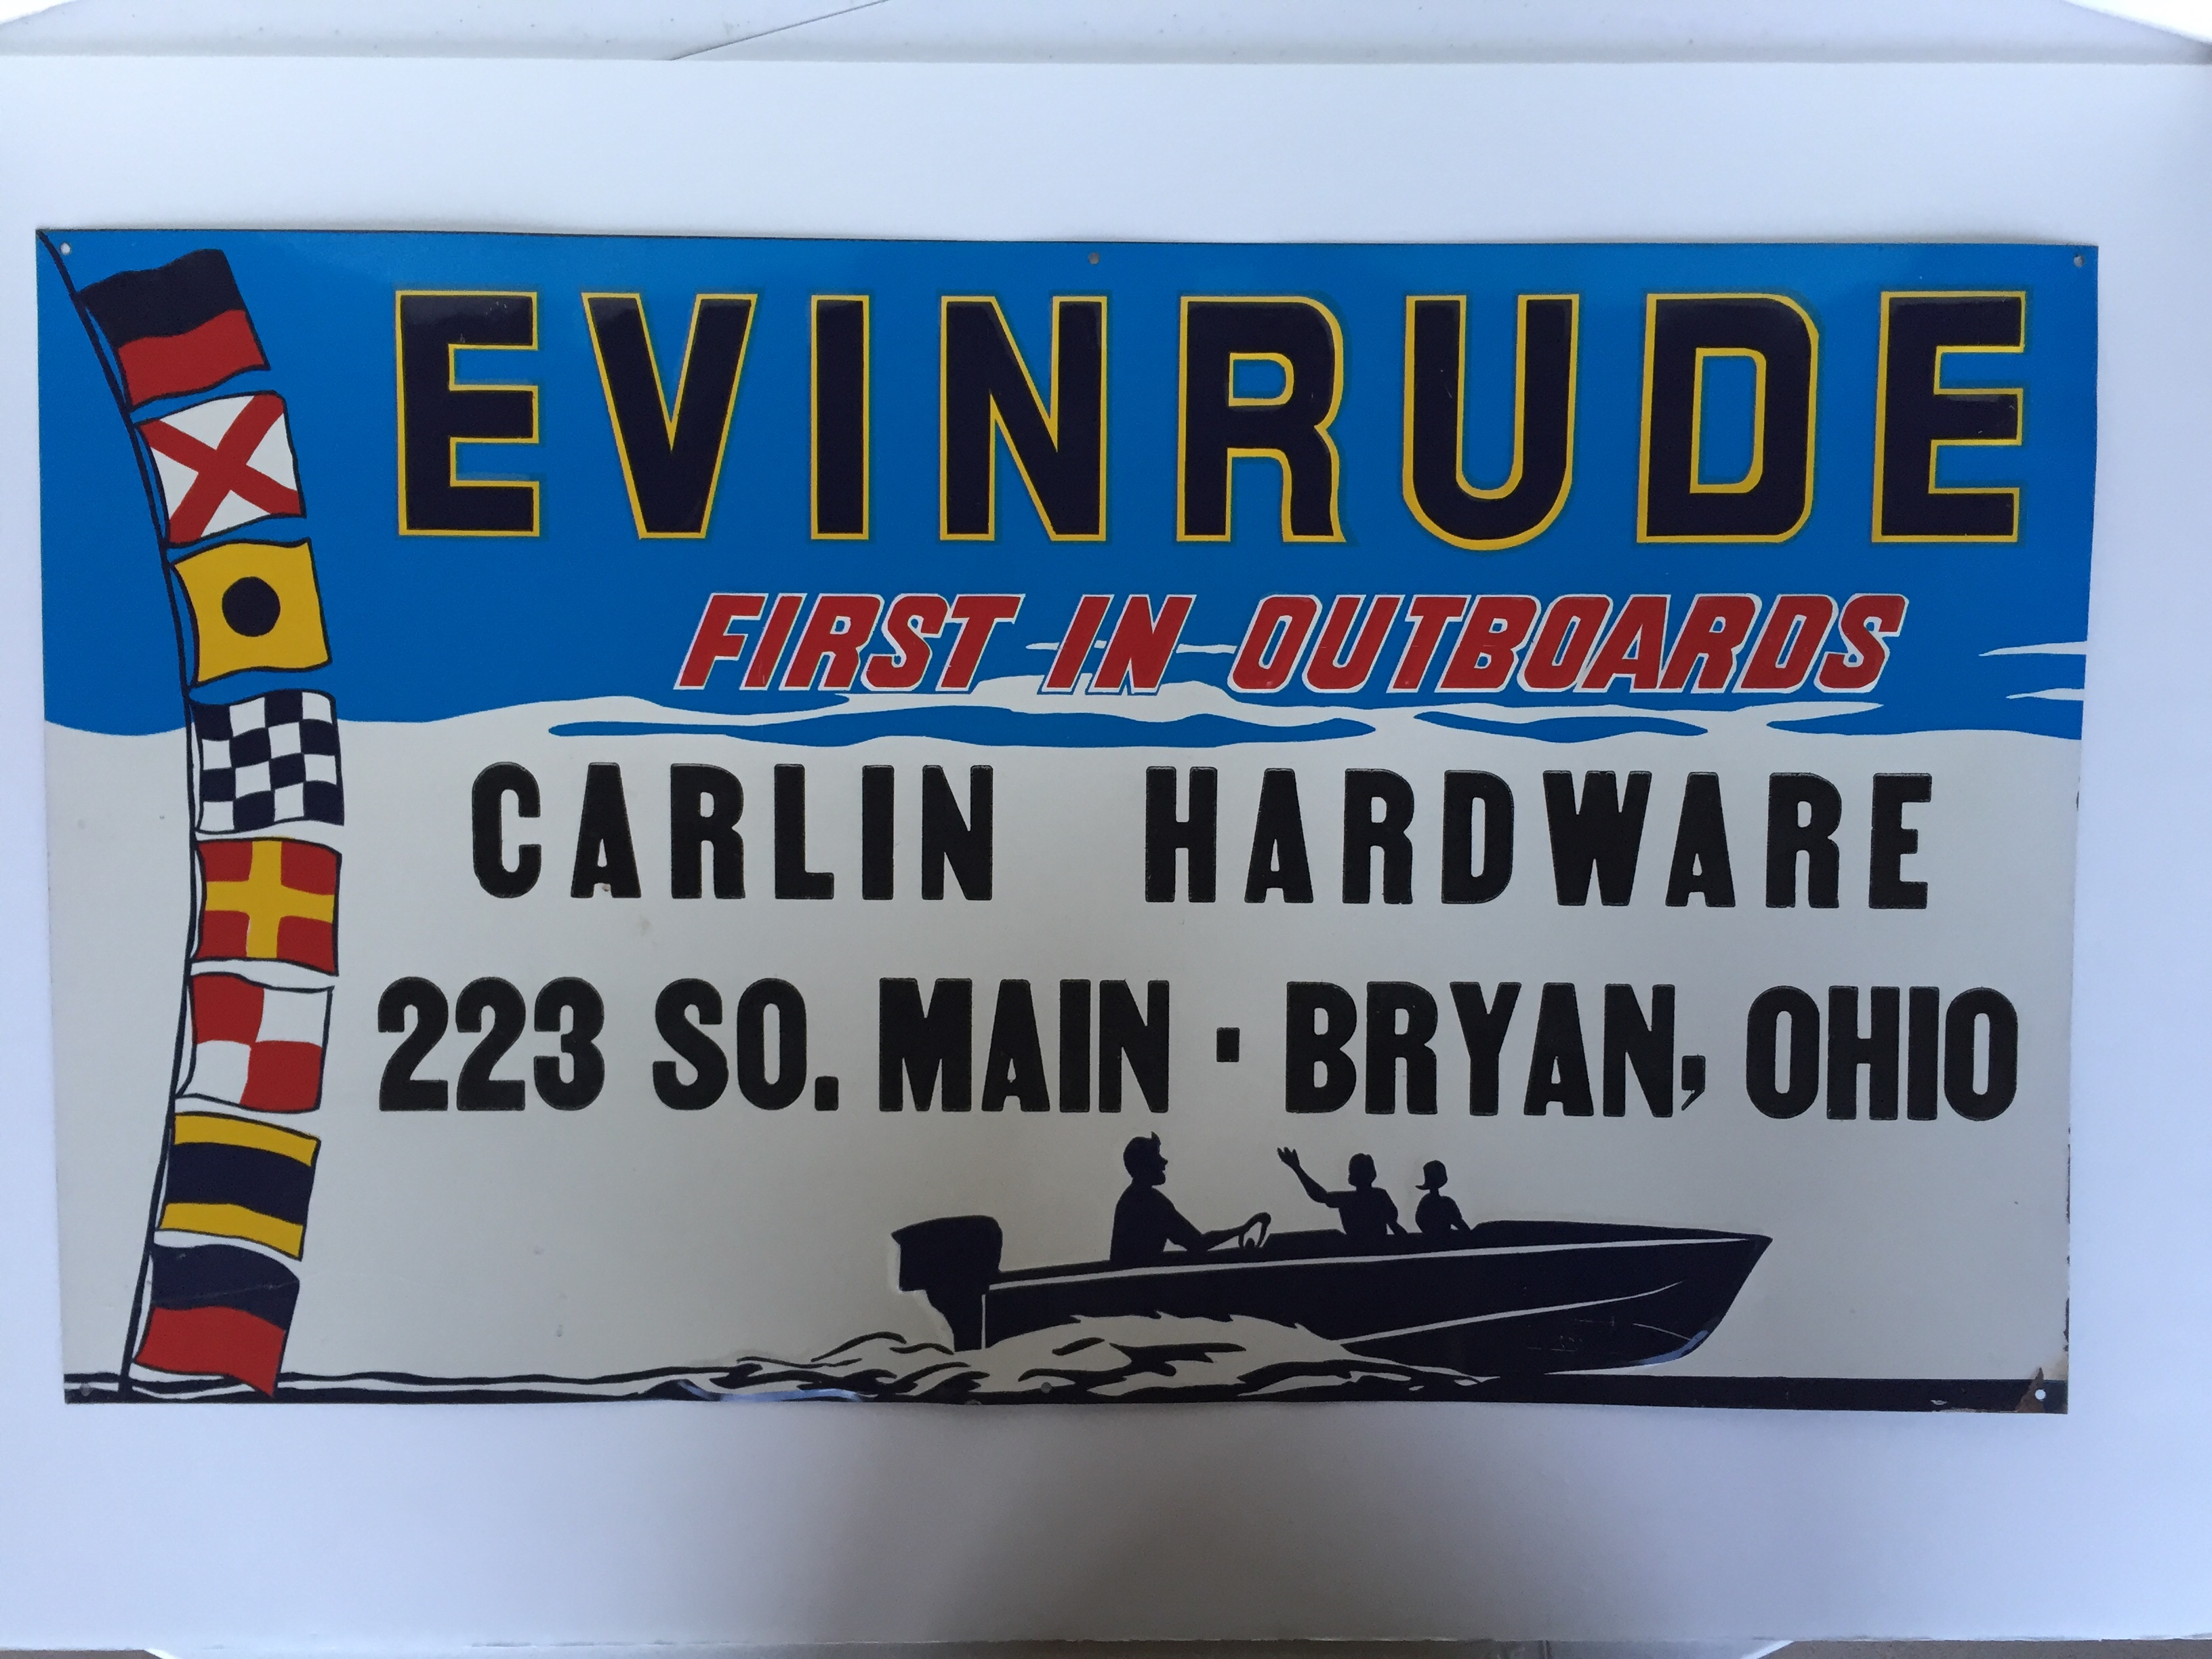 blue Evinrude sign